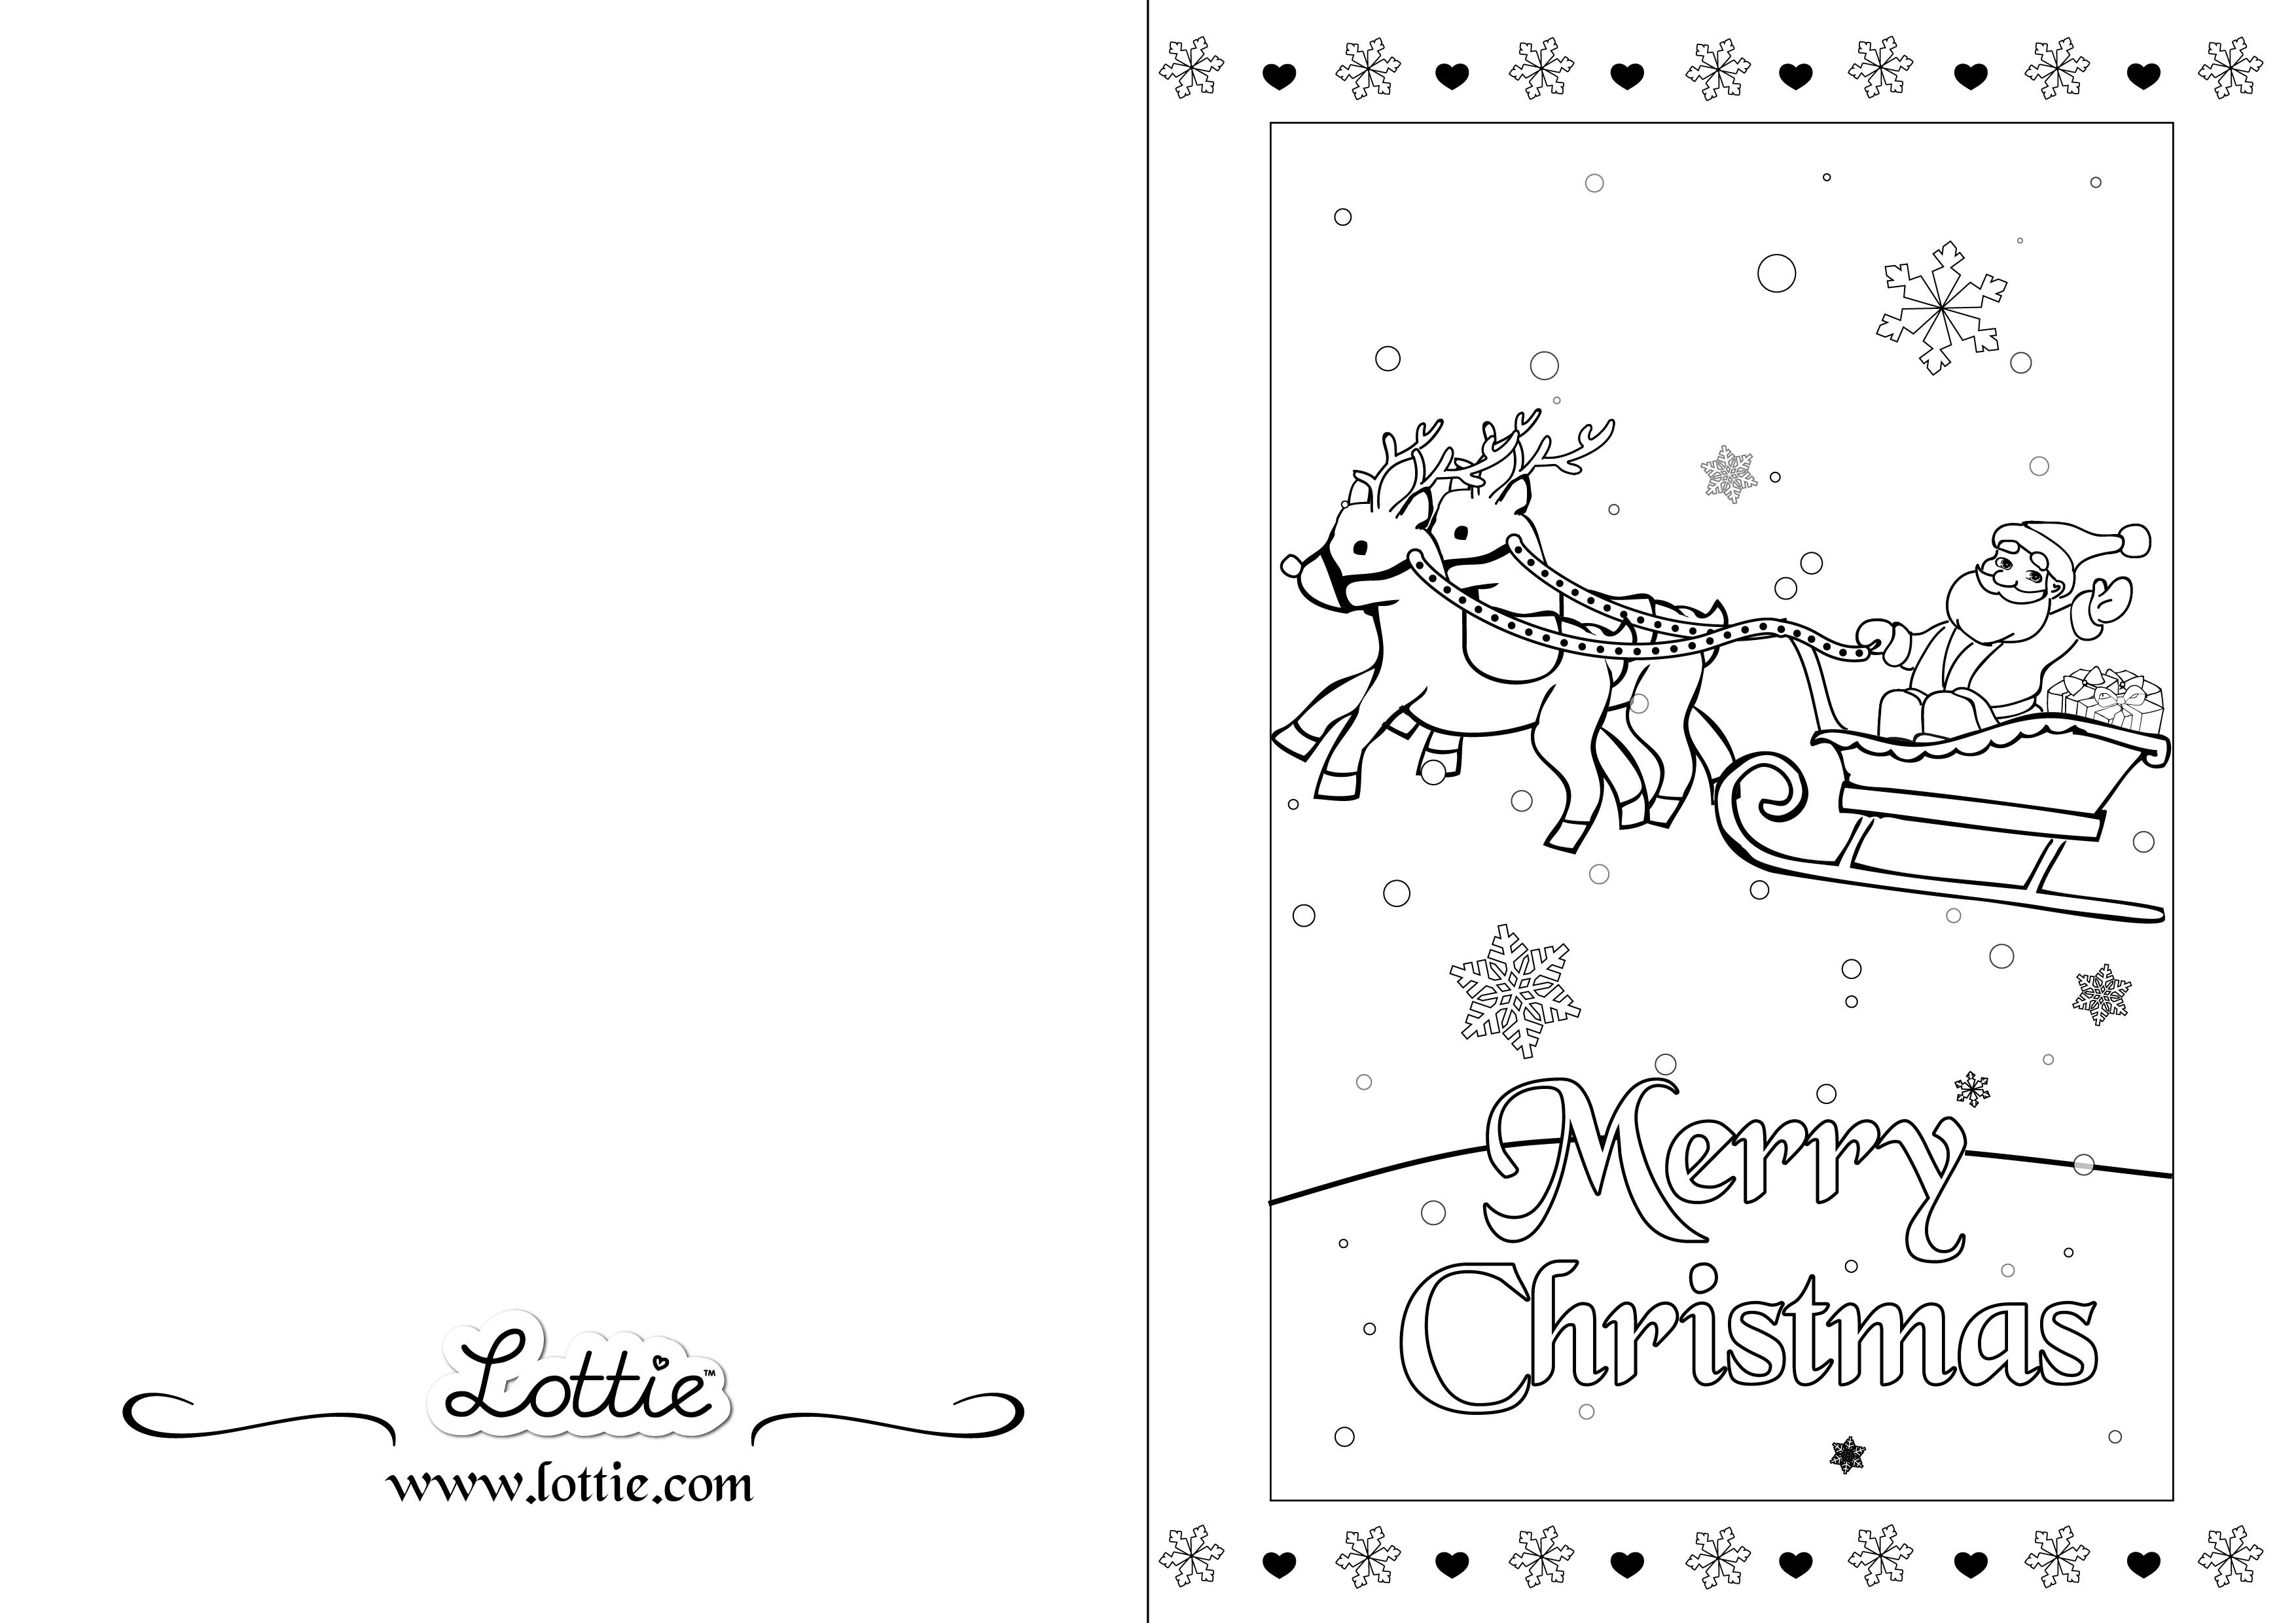 christmas cards printable to color craftsactvities and worksheets for preschooltoddler and christmas to cards printable color